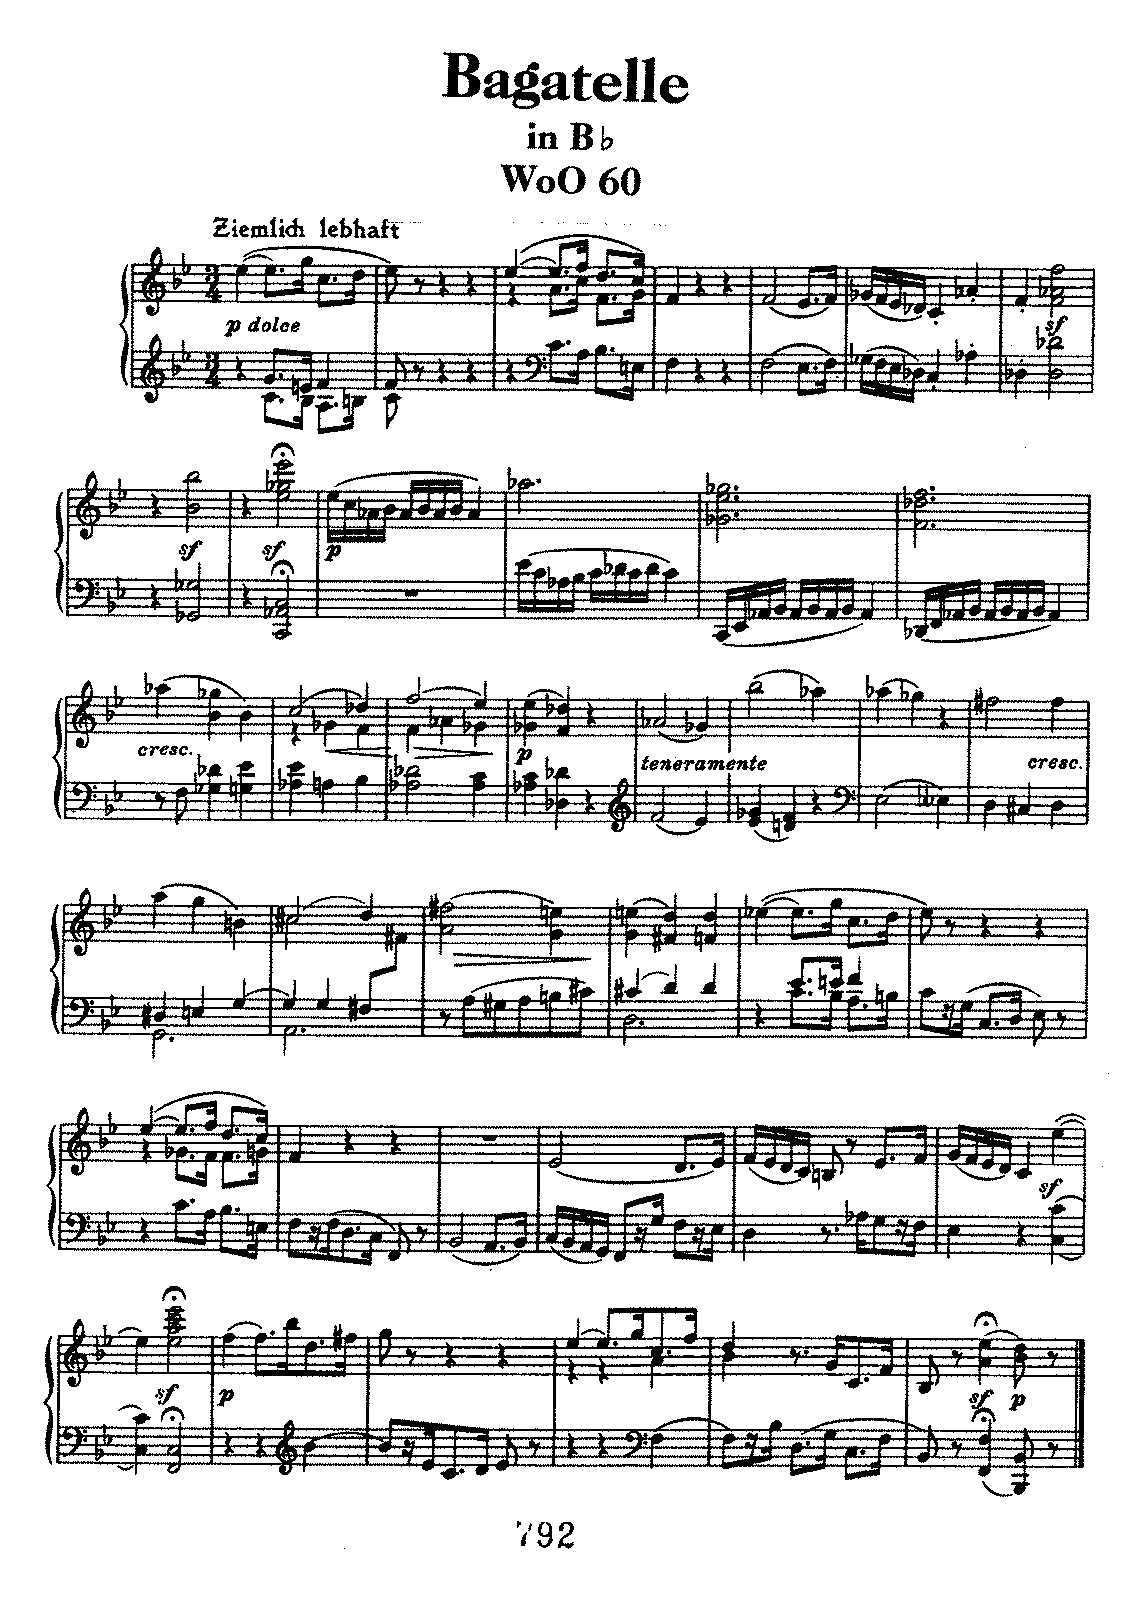 Beethoven - Bagatelle in Bb WoO 60.pdf